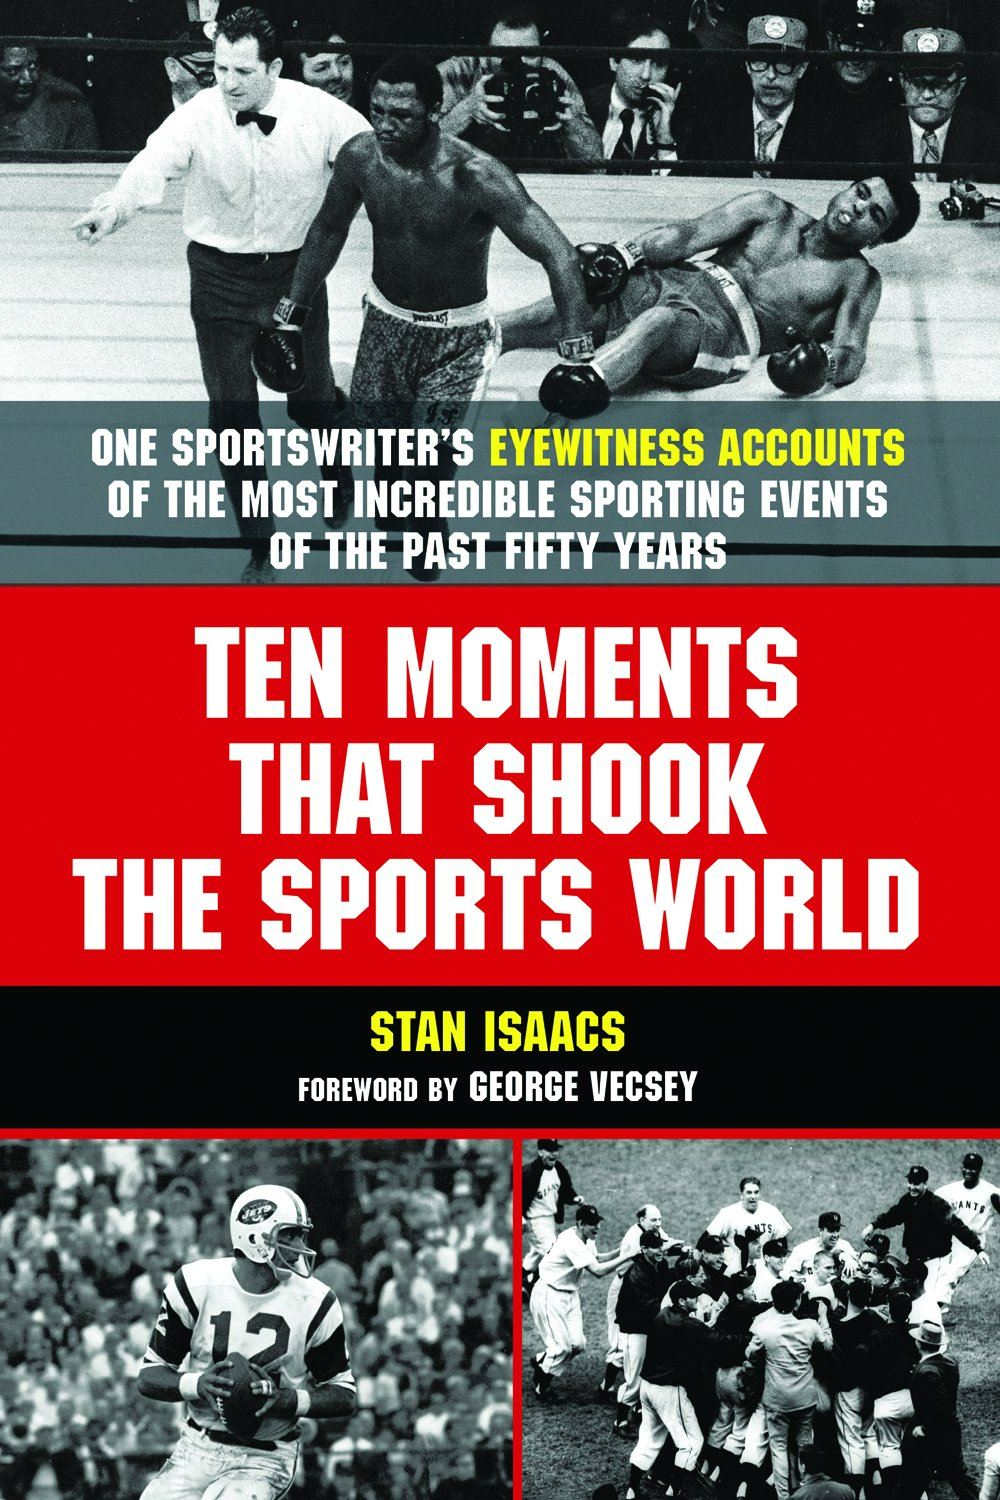 Ten Moments That Shook The Sports World: One Sportswriter's Eyewitness Accounts of the Most Incredible Sporting Events of the Past Fifty Years